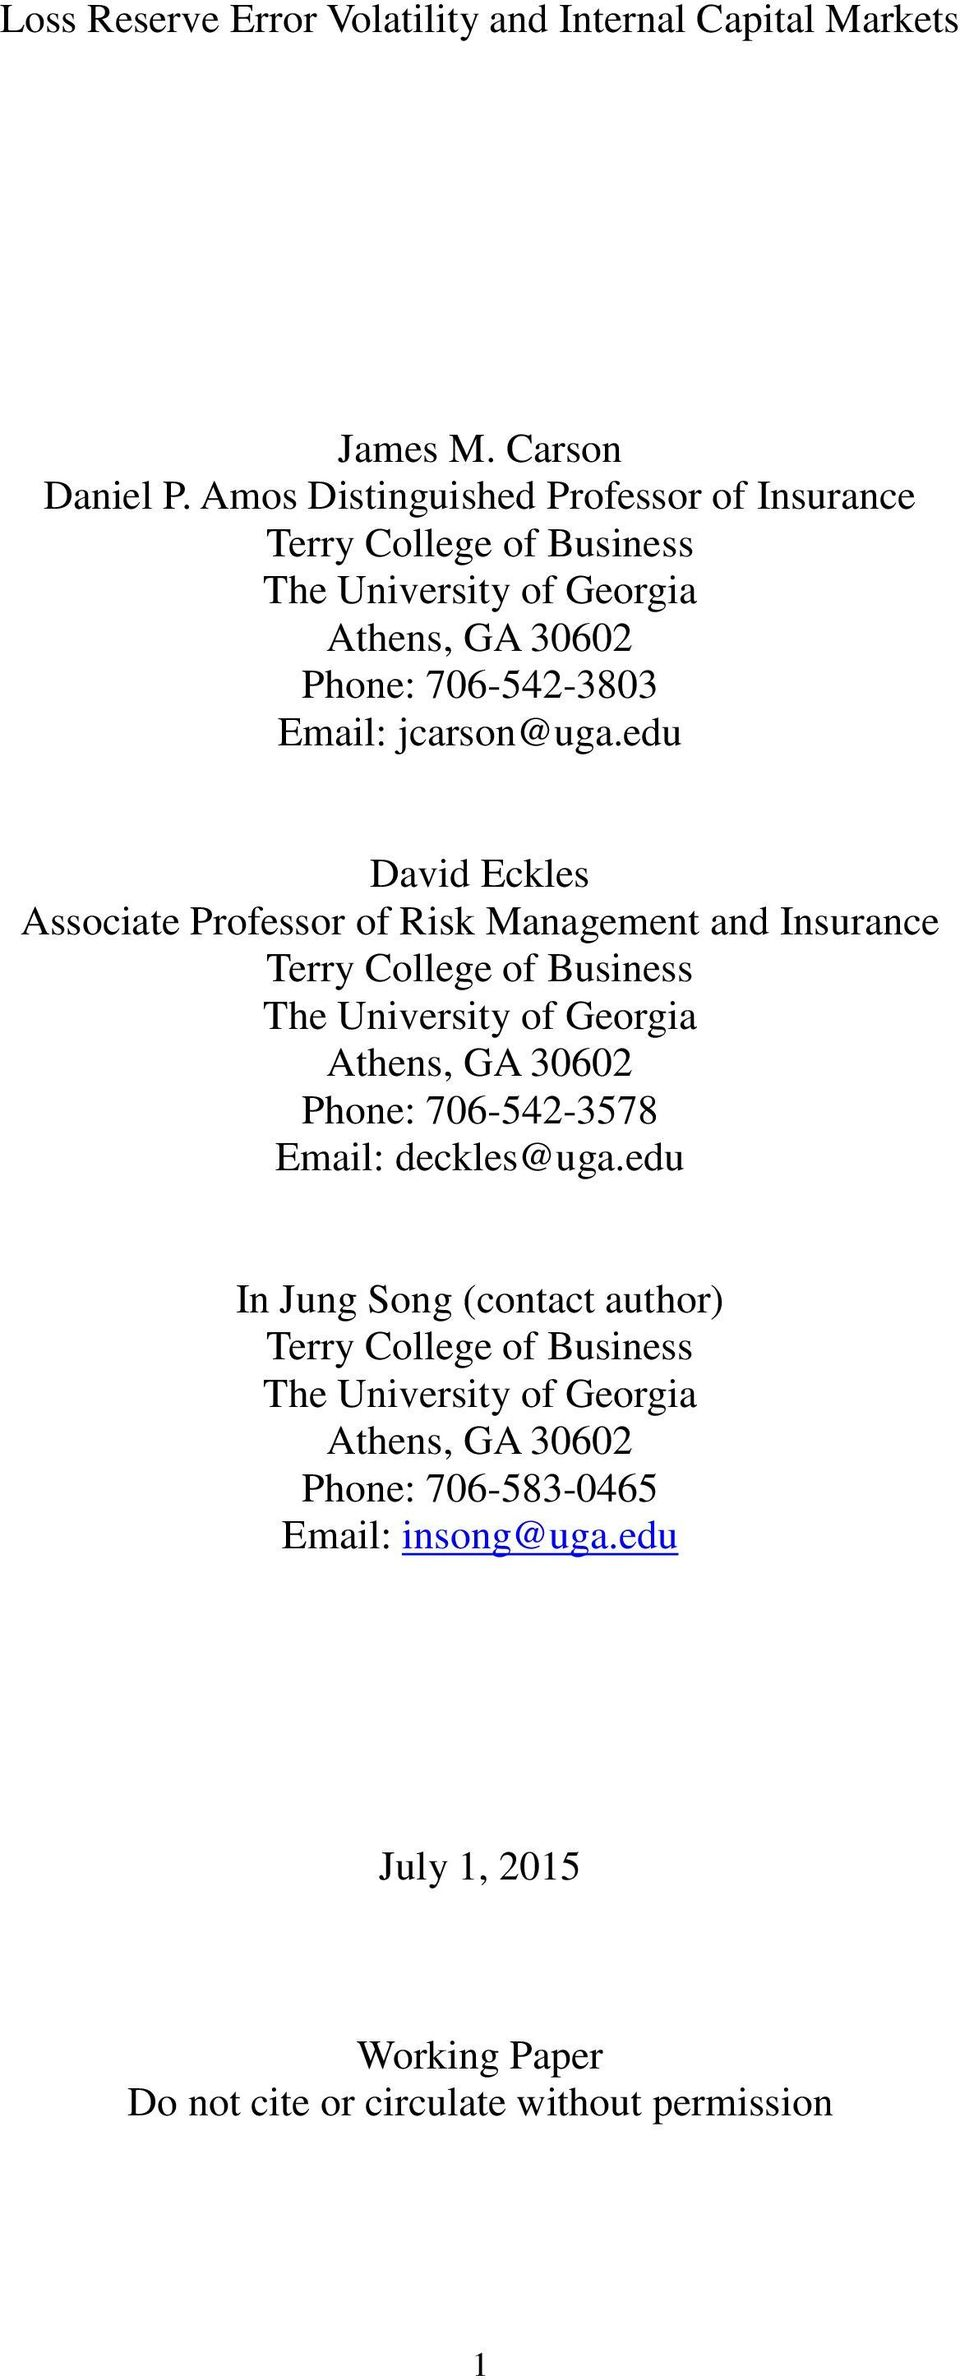 edu David Eckles Associate Professor of Risk Management and Insurance Terry College of Business The University of Georgia Athens, GA 30602 Phone: